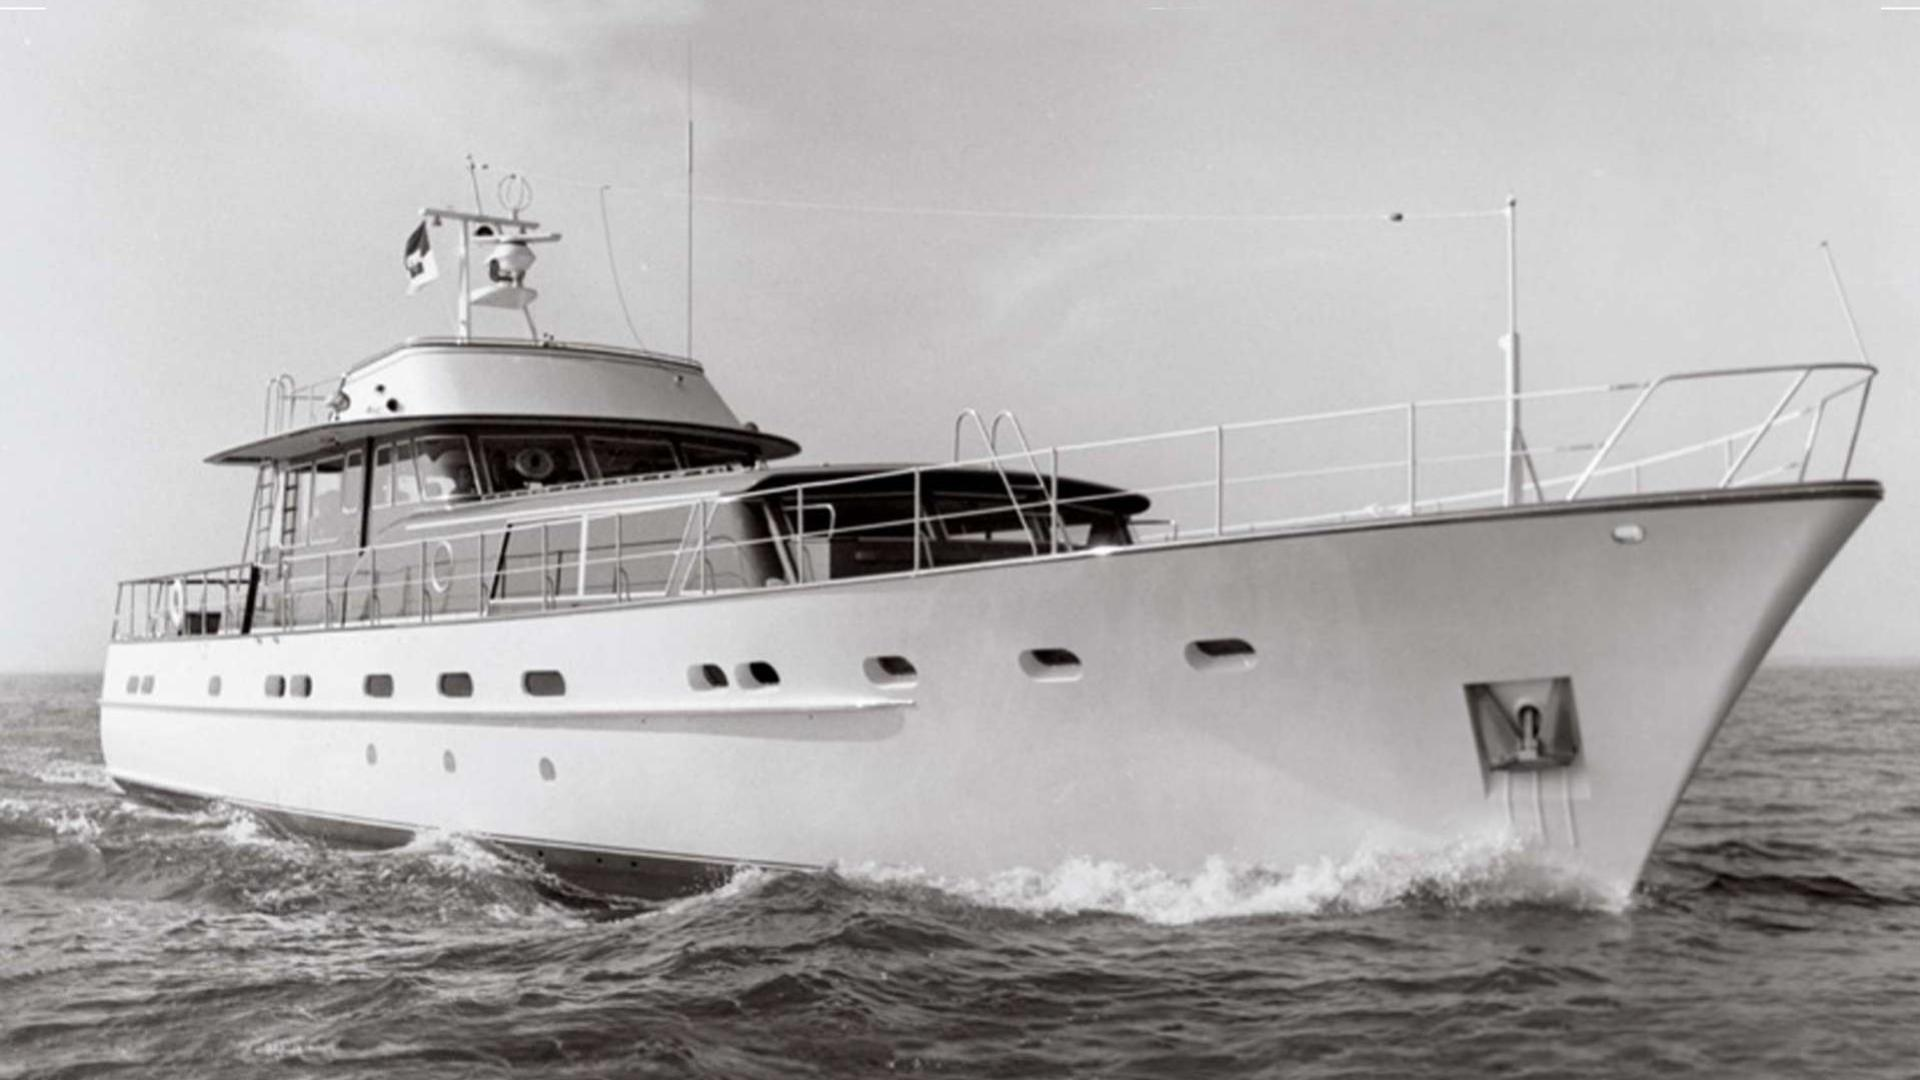 magica-stella-motor-yacht-feadship-carvelle-series-iii-1968-25m-cruising